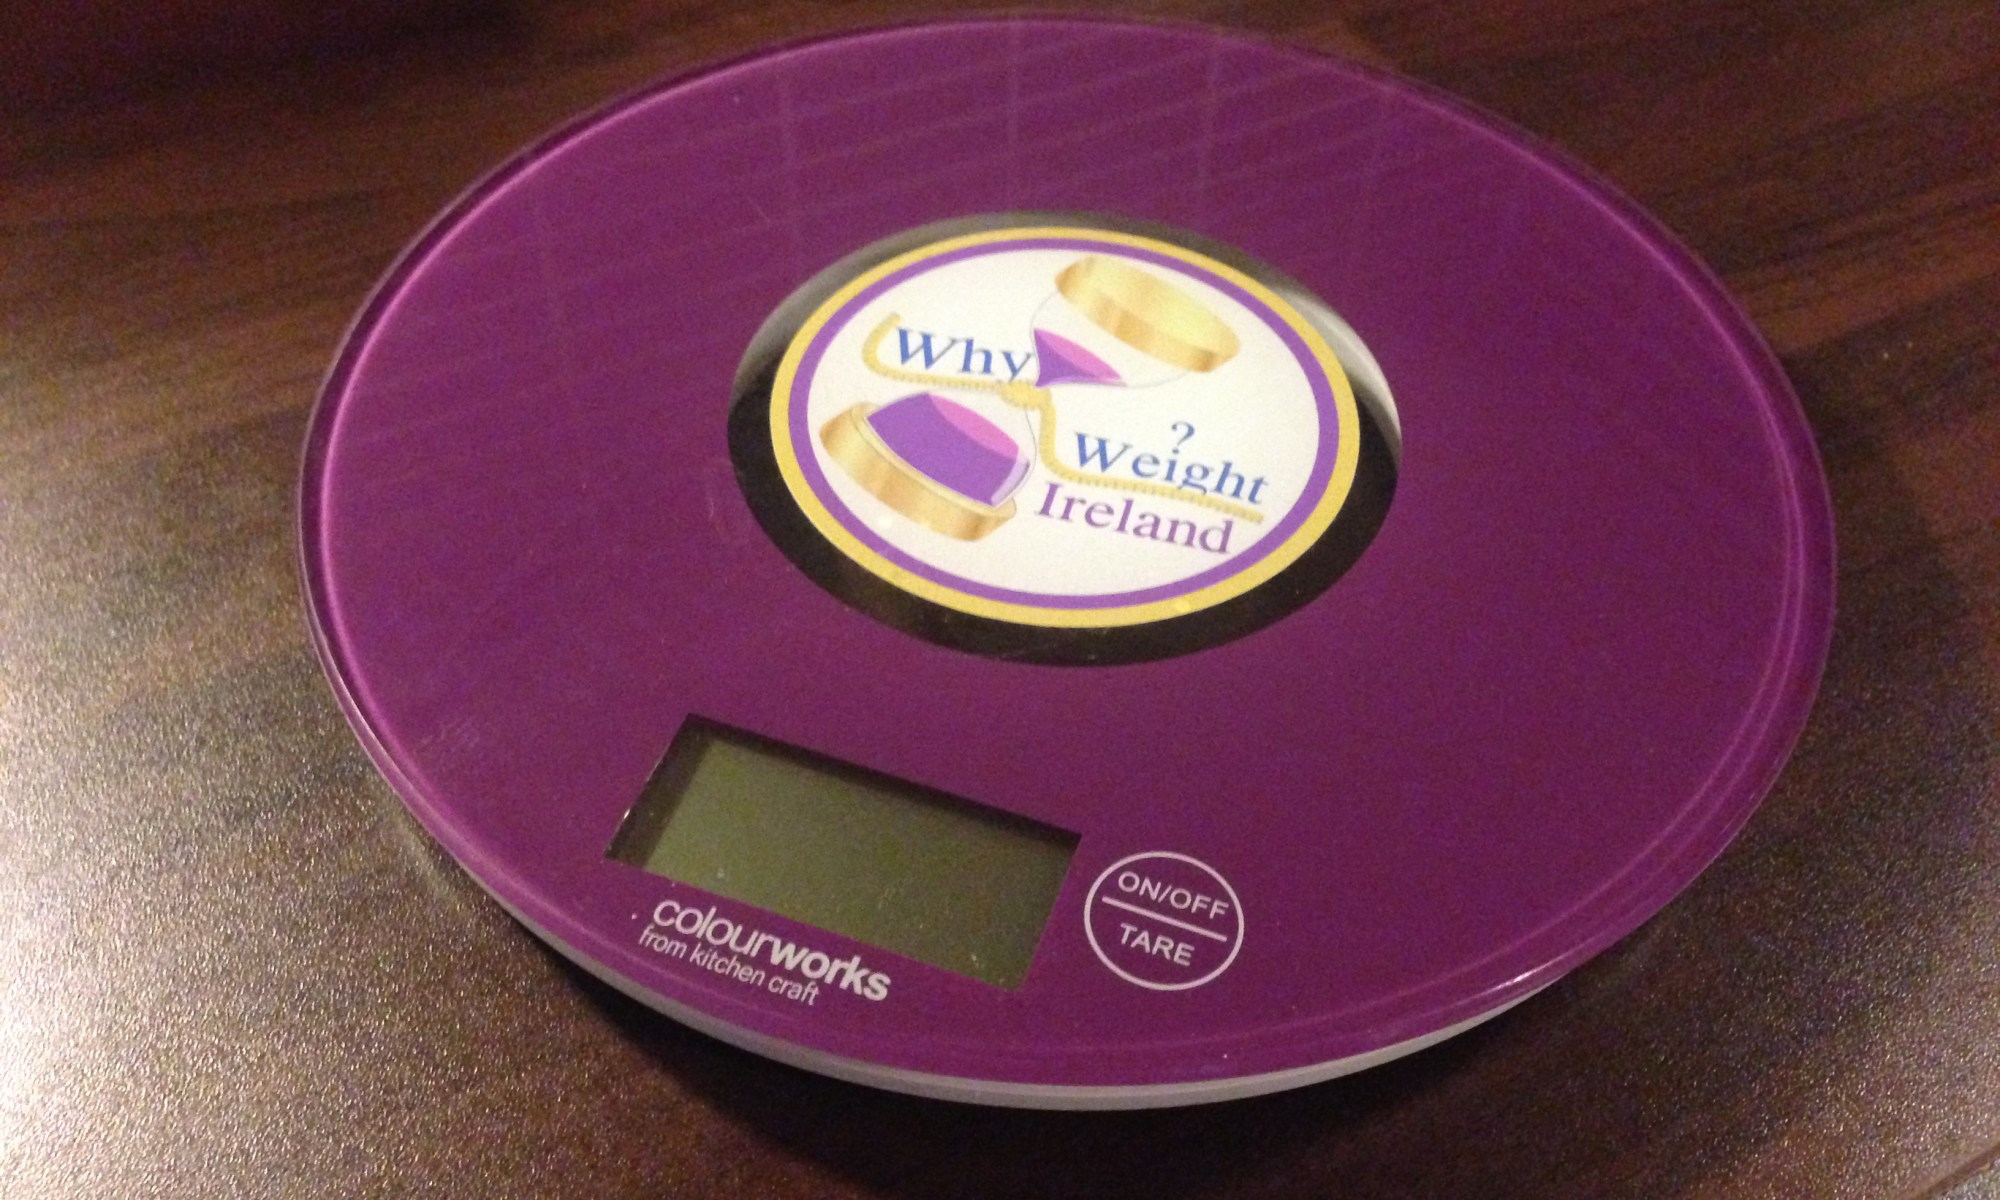 Purple Why Weight Ireland Food Scales